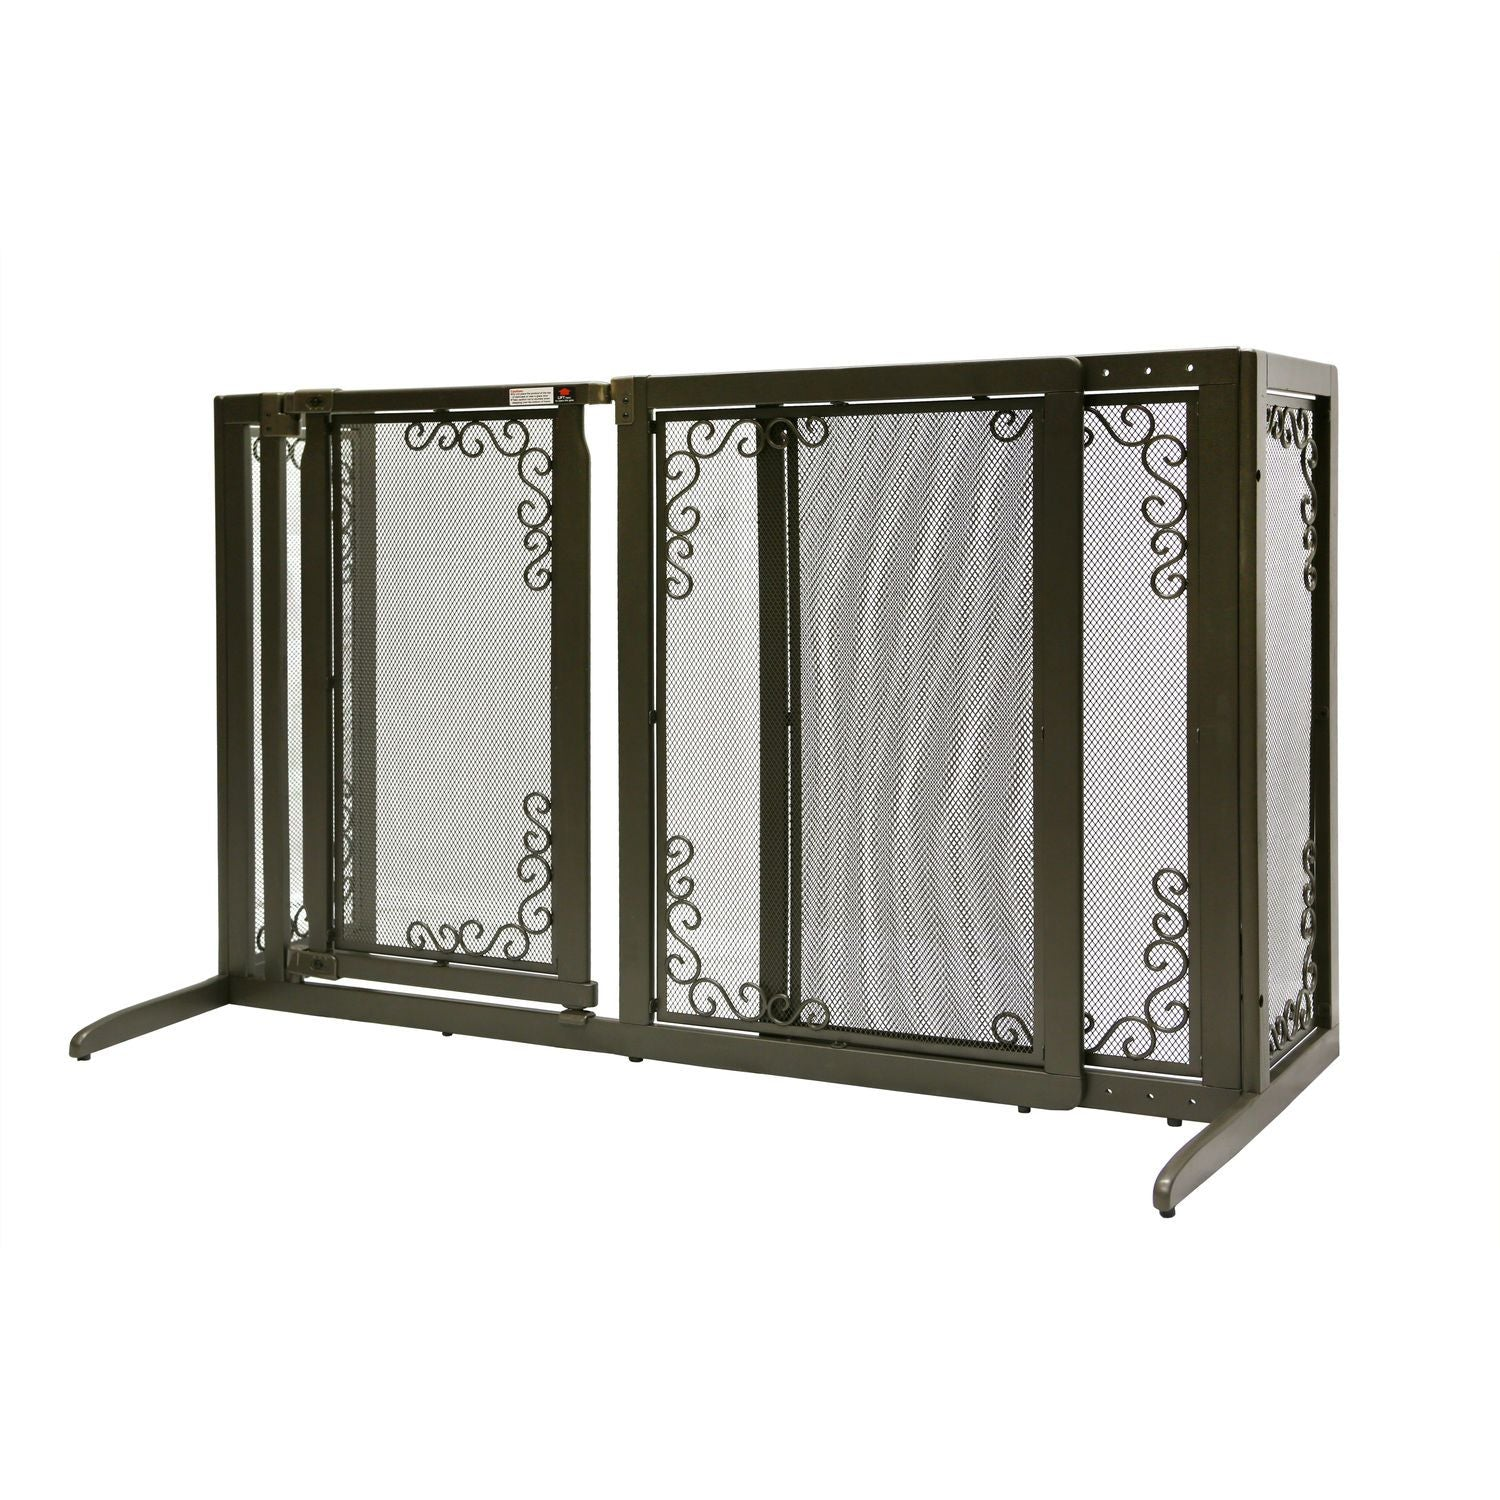 Richell R94912 Deluxe Freestanding Mesh Pet Gate